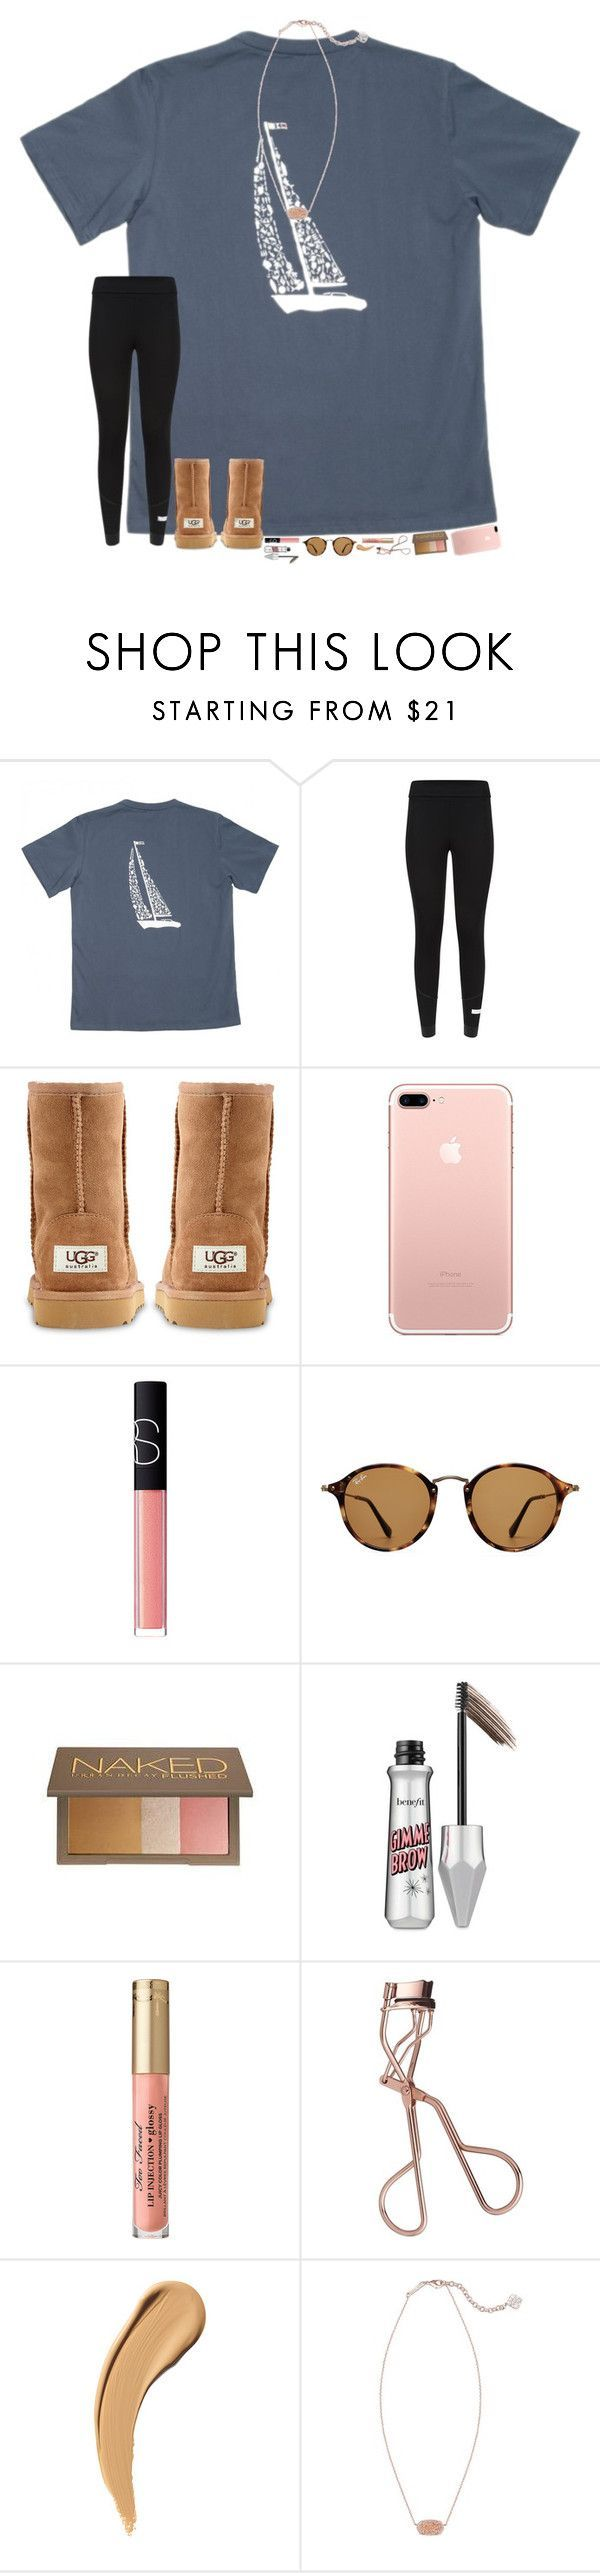 """""""it's almost time to start listening to Christmas music!! """" by hopemarlee ❤ liked on Polyvore featuring adidas, UGG Australia, NARS Cosmetics, Ray-Ban, Urban Decay, Benefit, Charlotte Tilbury and Kendra Scott"""